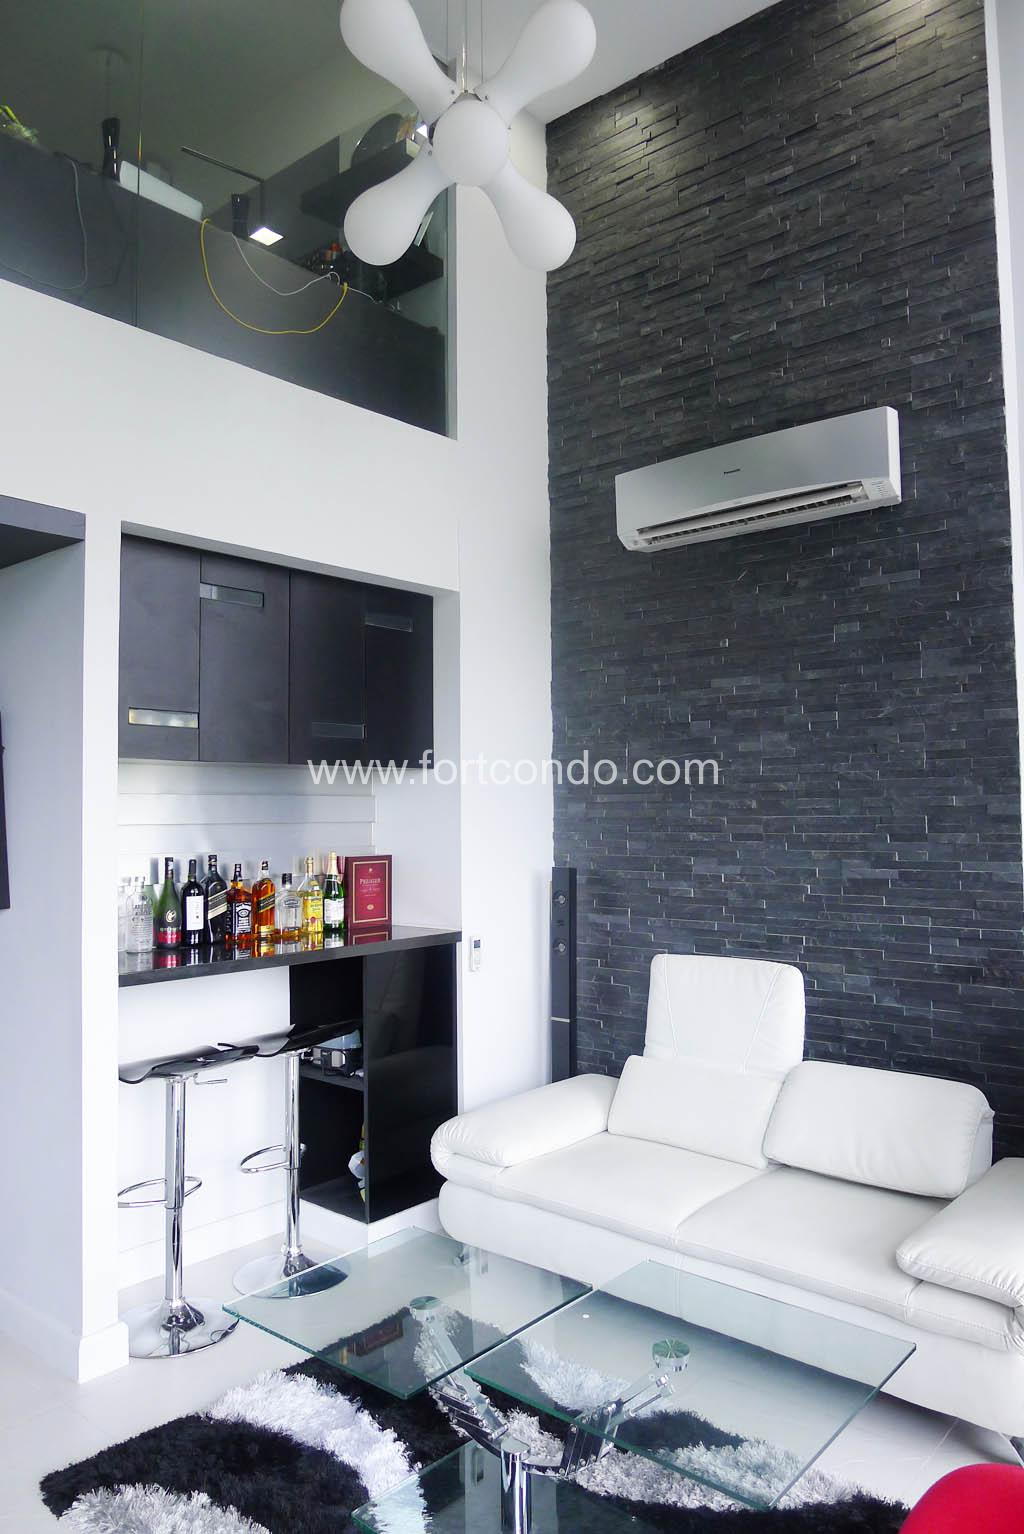 bellagio two global city 1 bedroom loft condo for sale in bellagio fort bonifacio global city bgc fully furnished 61 sqm 1 br loft apartment for sale in bellagio two selling price: p9,300,000 – plus p950,000 for.